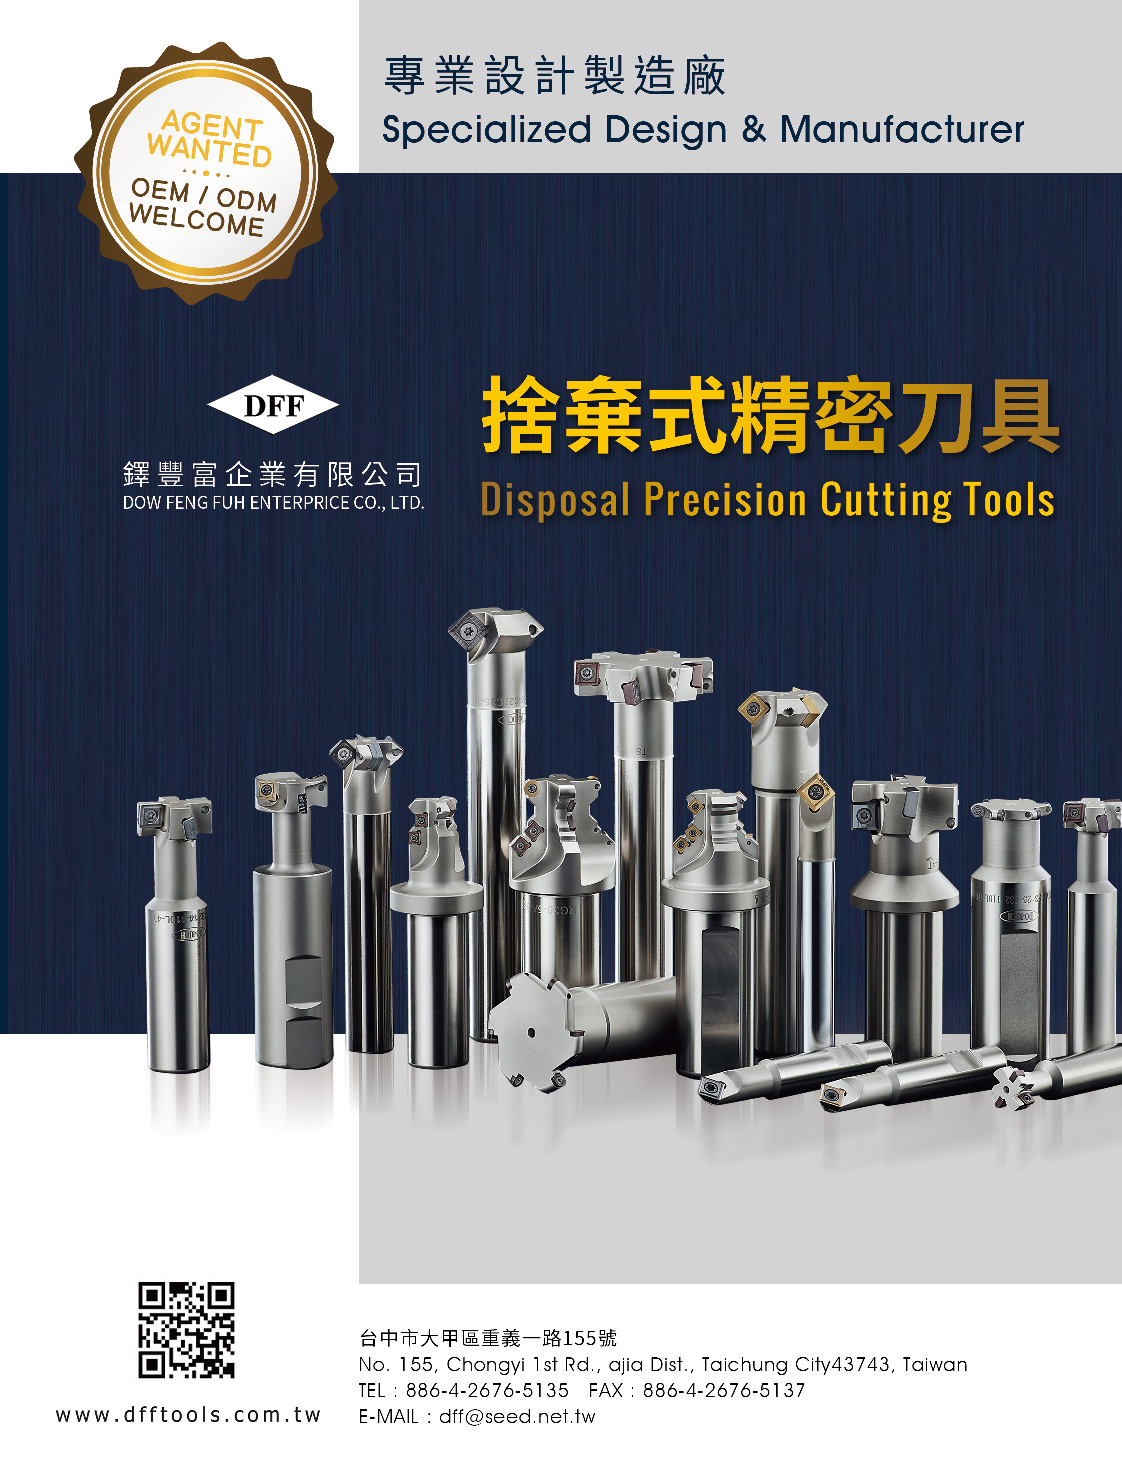 DOW FENG FUH ENTERPRISE CO., LTD.